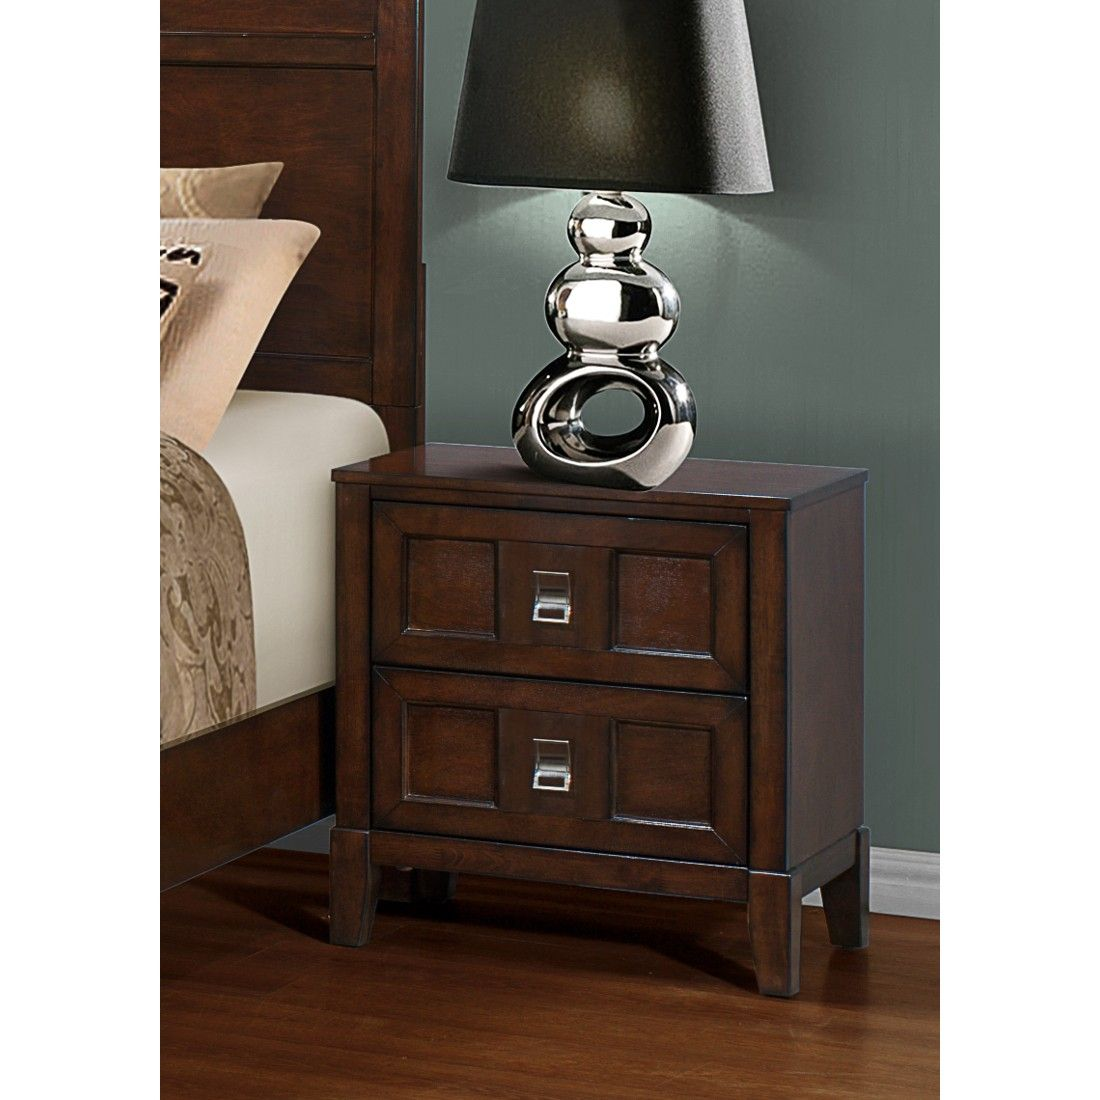 city vista night stand new house winsome daniel accent table with drawer black finish pottery barn torchiere floor lamp best outdoor grills ballard designs furniture super skinny